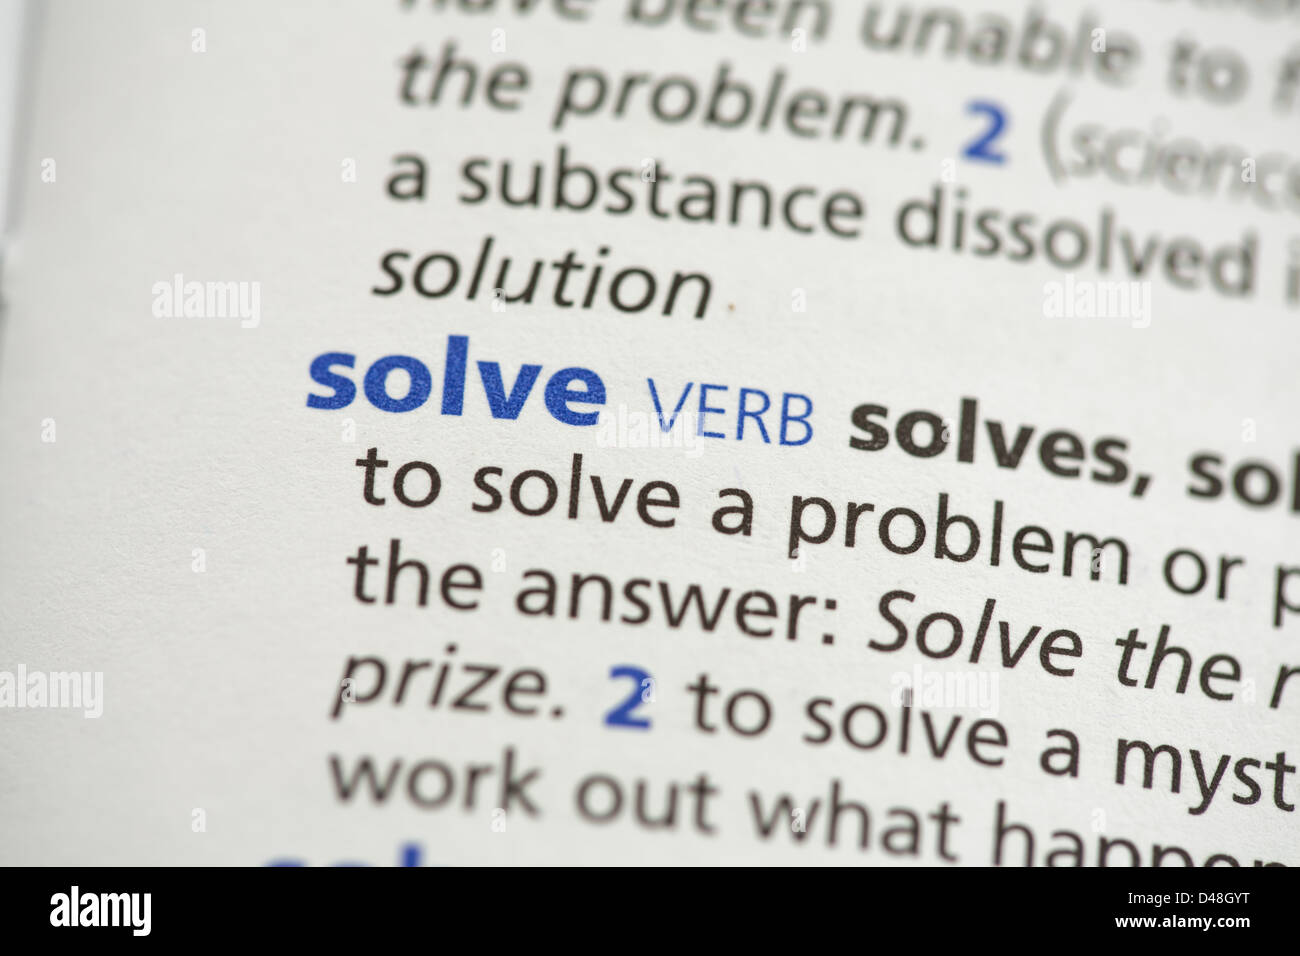 Solve definition - Stock Image